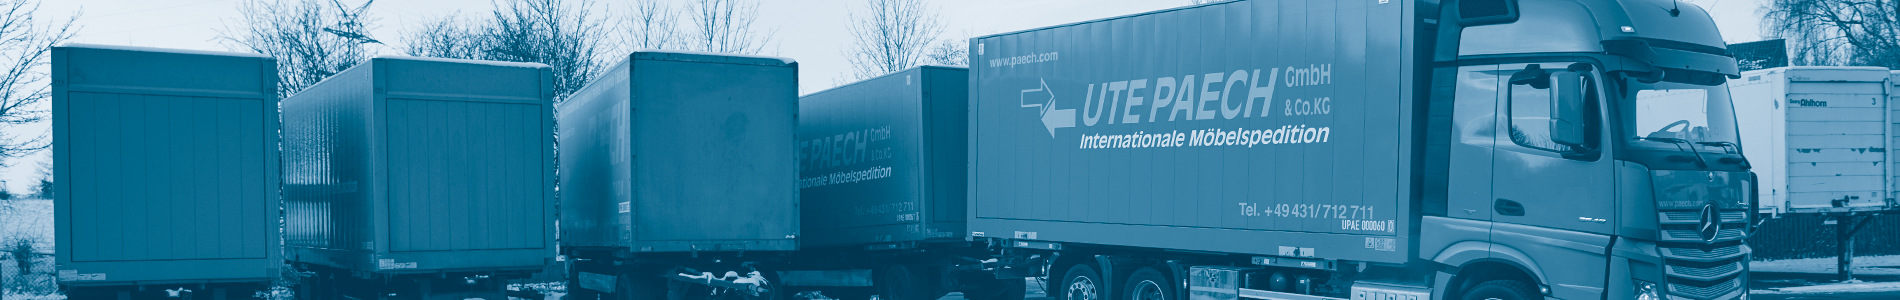 Ute Paech GmbH & Co. KG - Office and company transfer